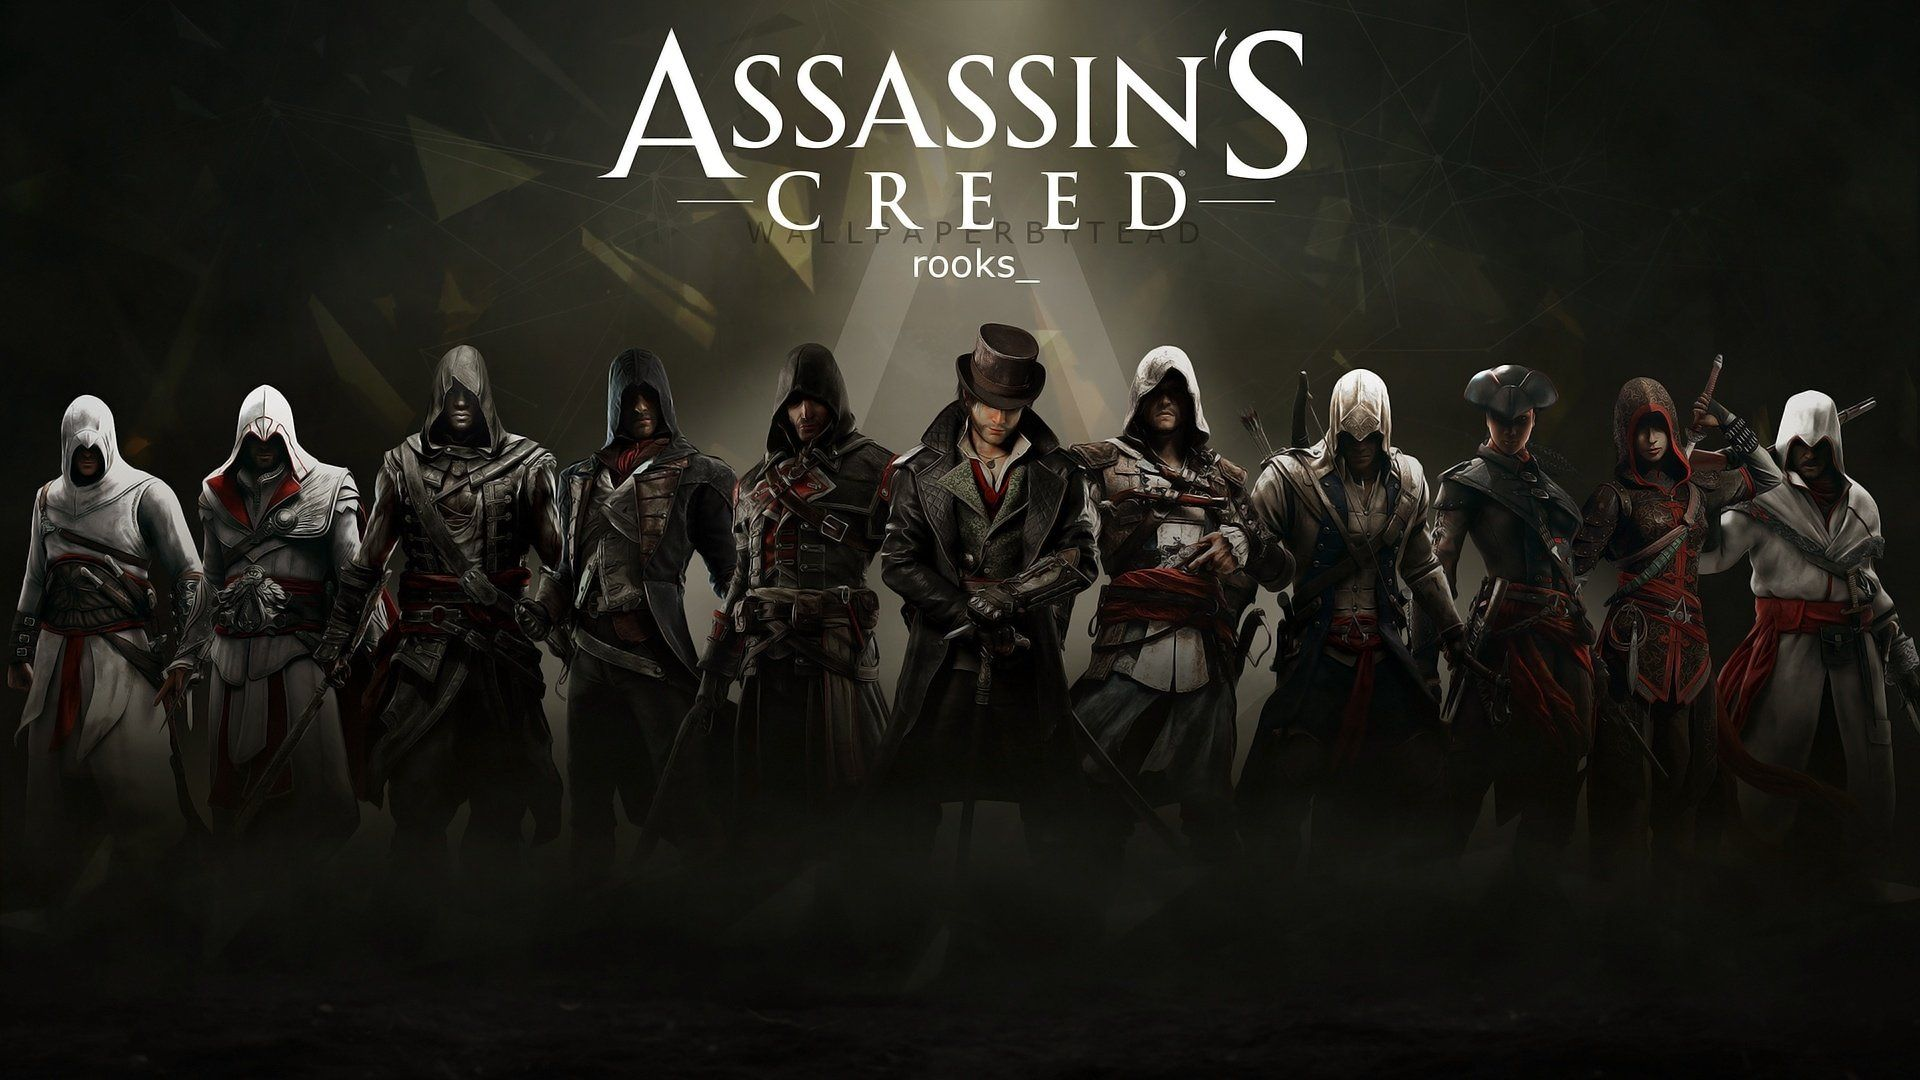 Assassin S Creed Wallpapers Top Free Assassin S Creed Backgrounds Wallpaperaccess